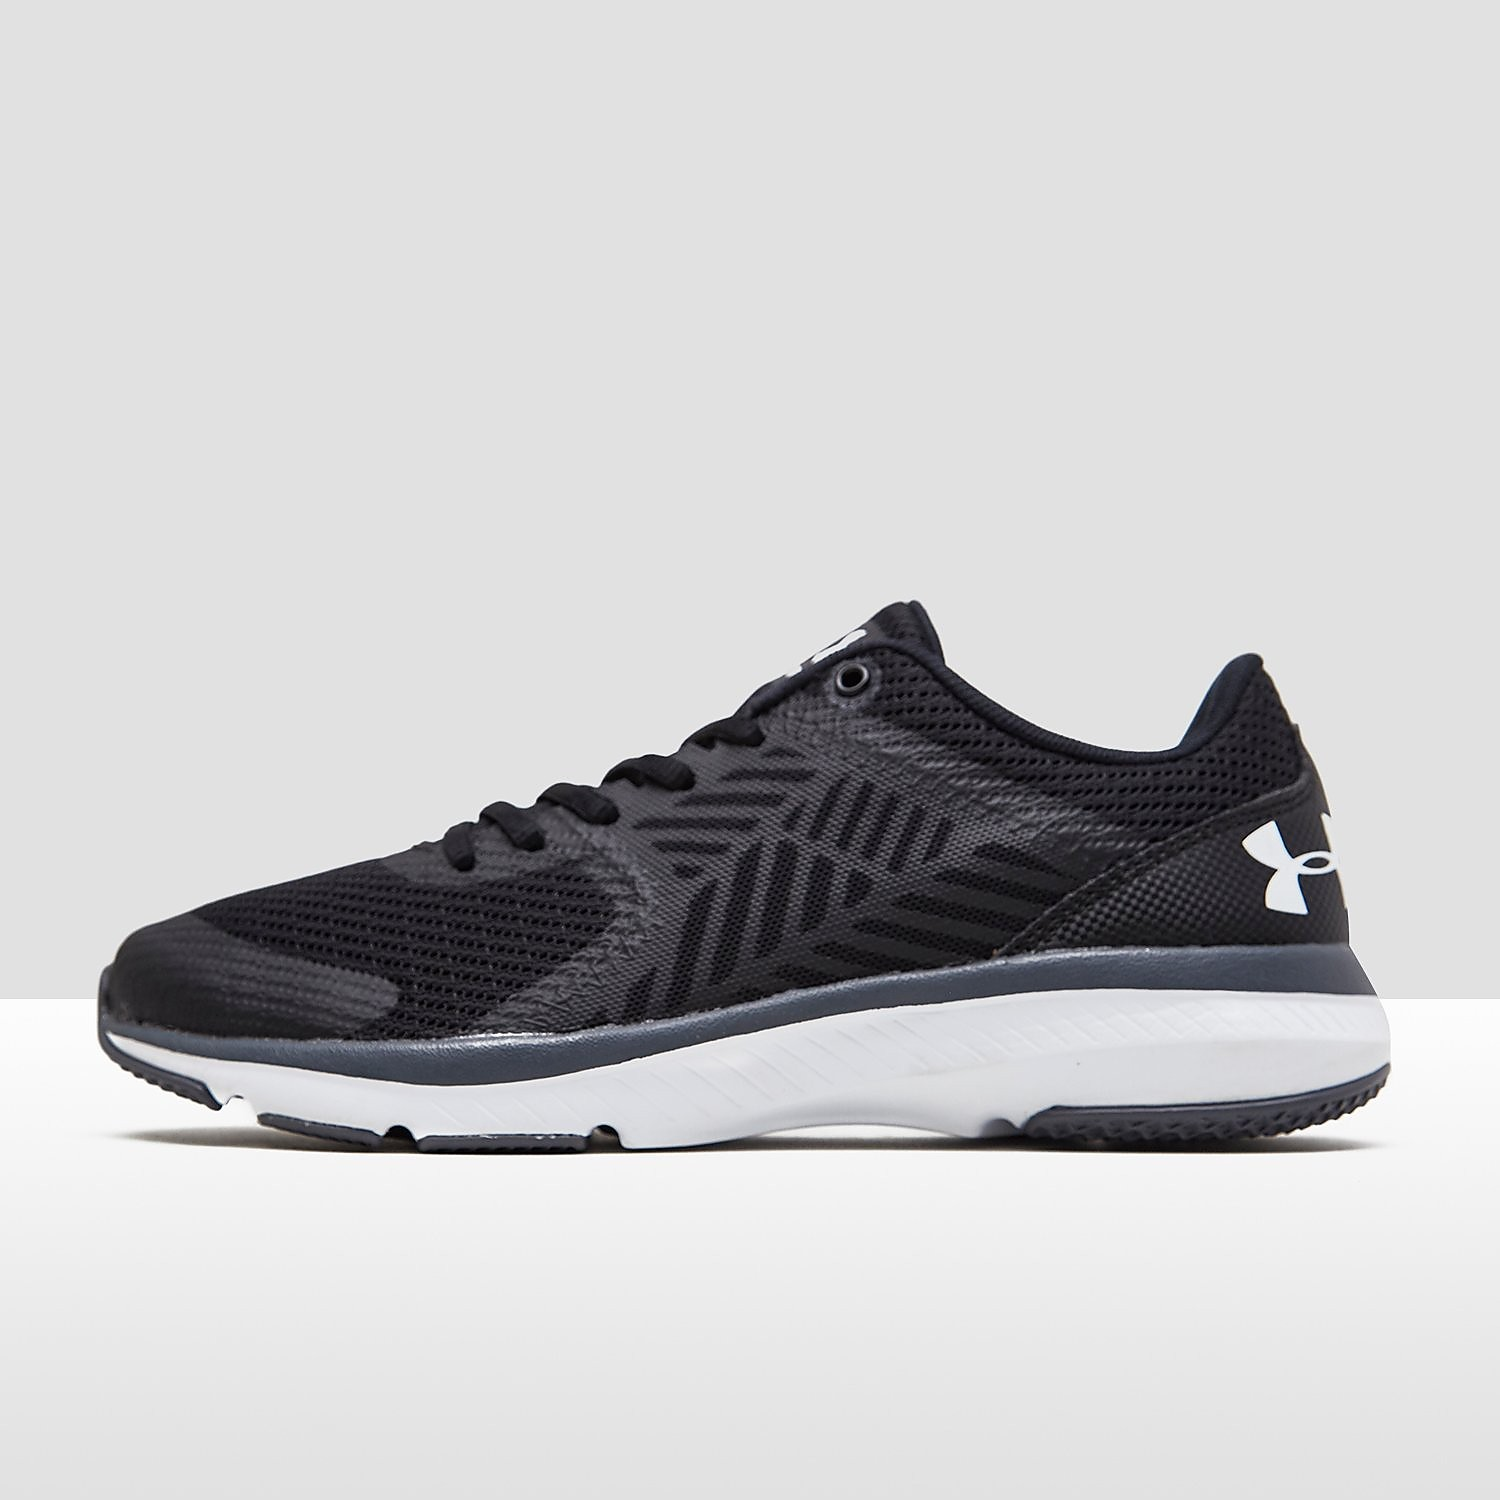 UNDER ARMOUR MICRO G PRESS TR SPORTSCHOENEN ZWART DAMES